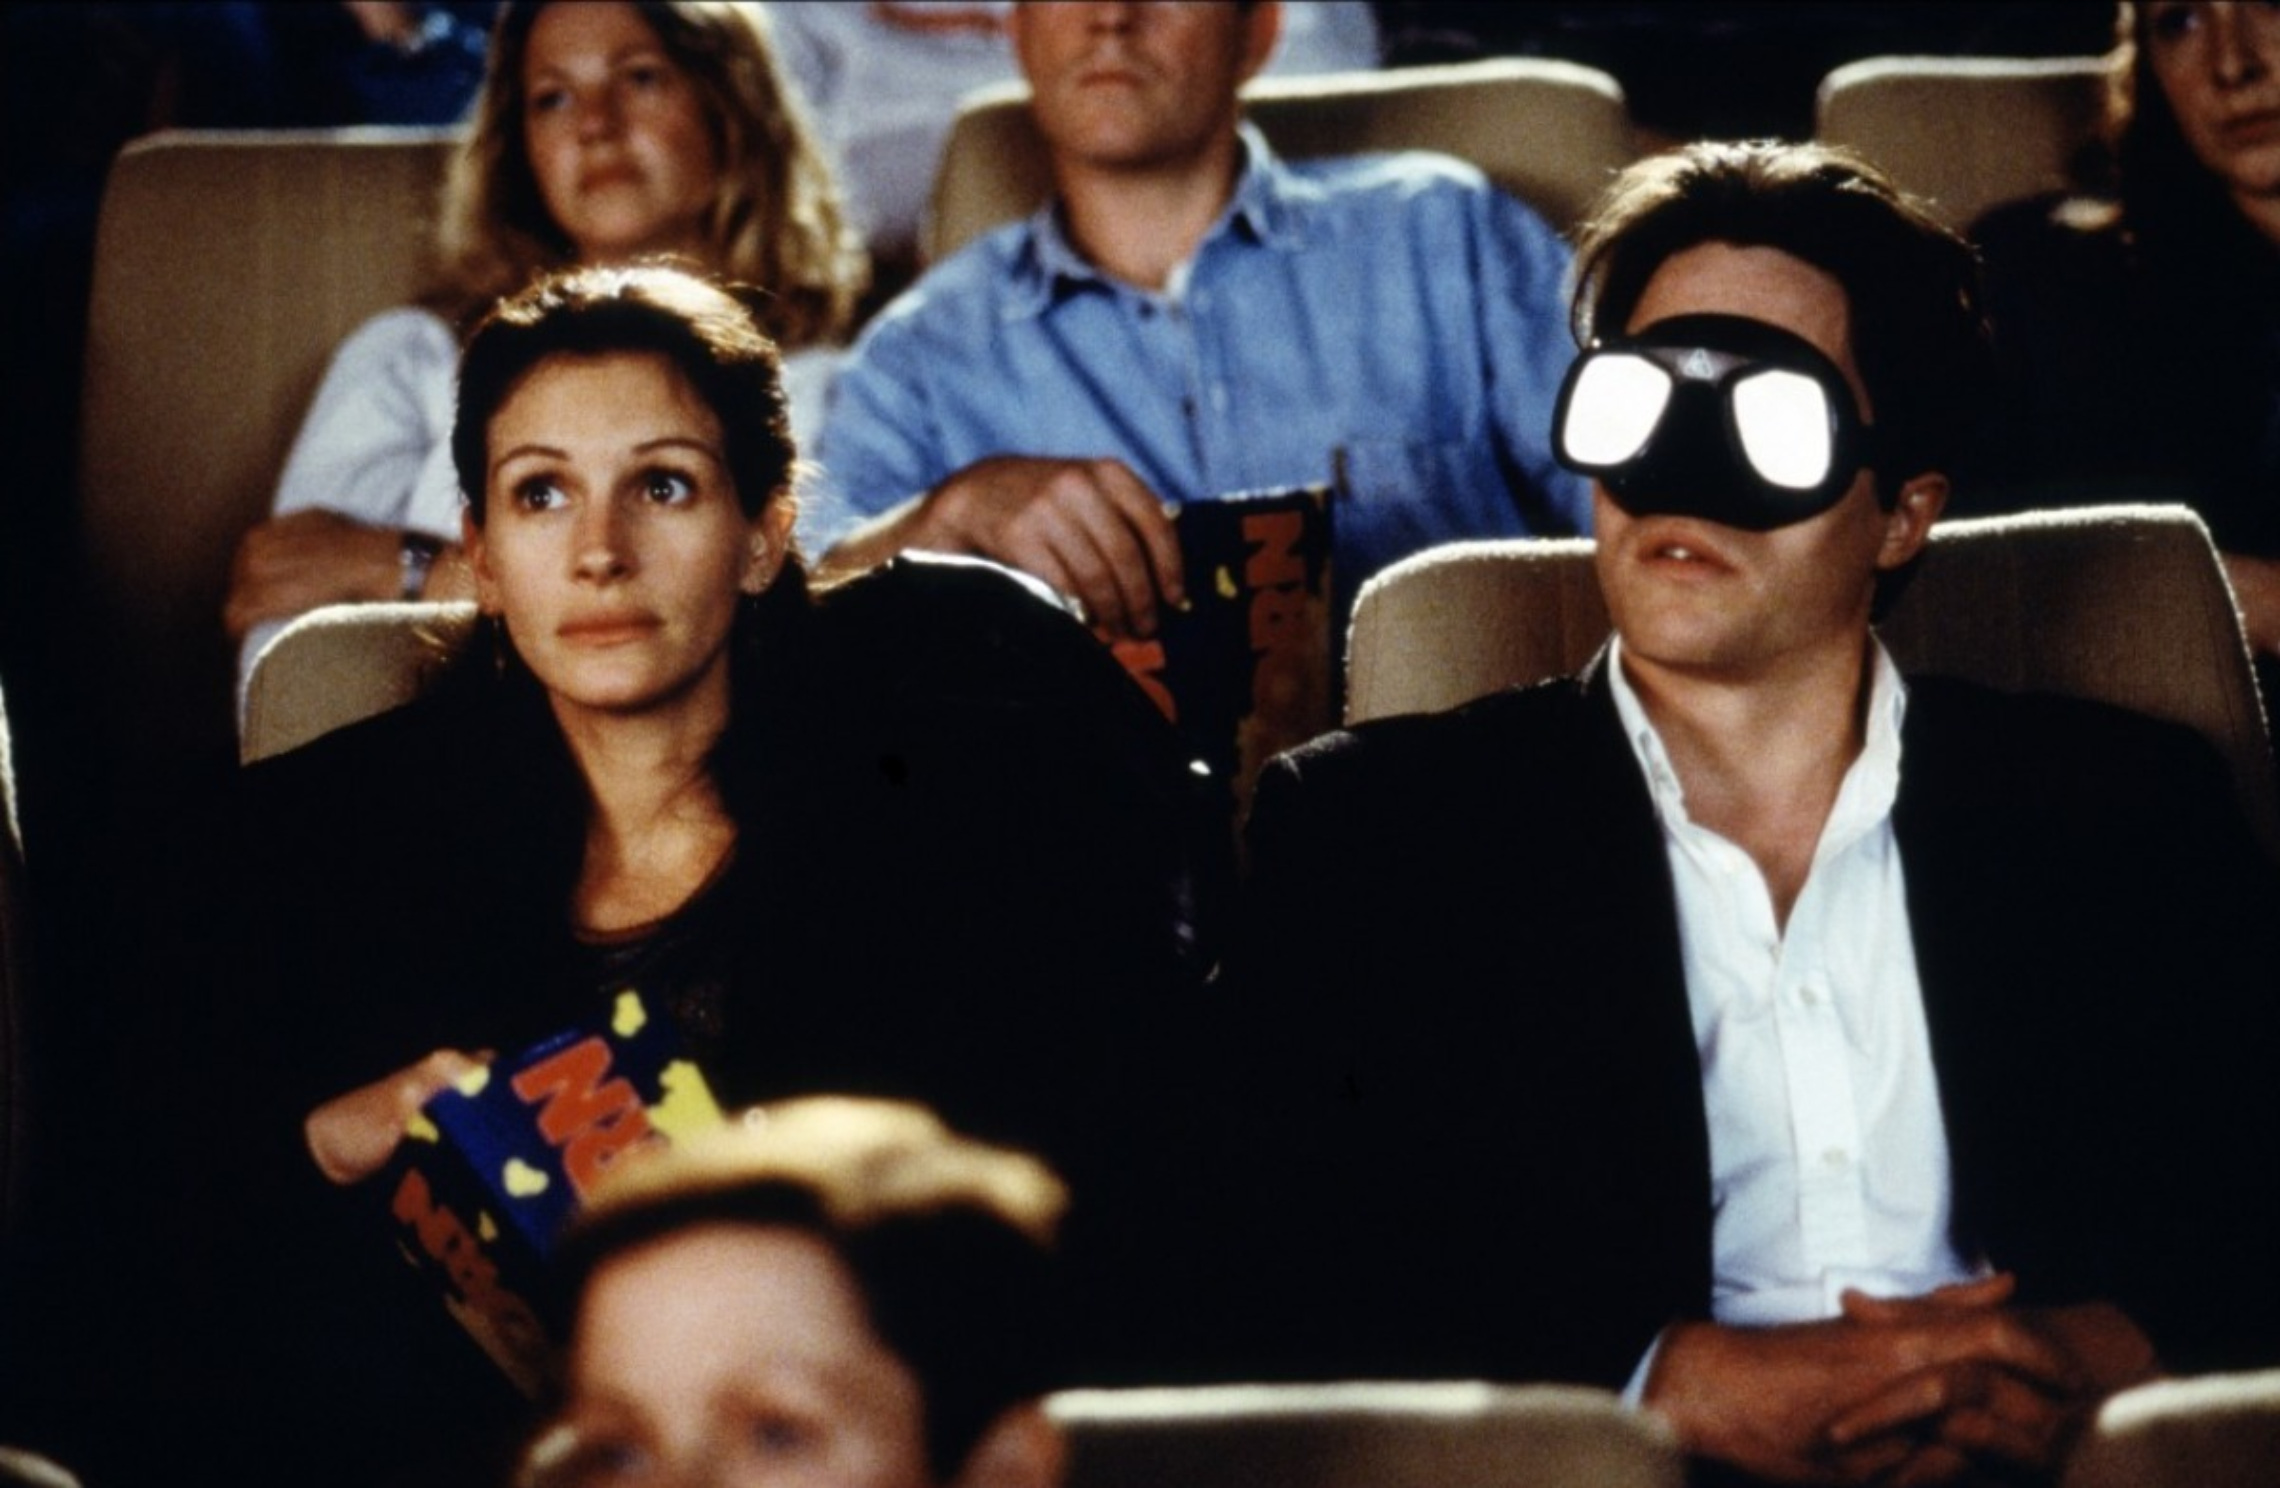 Julia Roberts and Hugh Grant in a cinema in Notting Hill